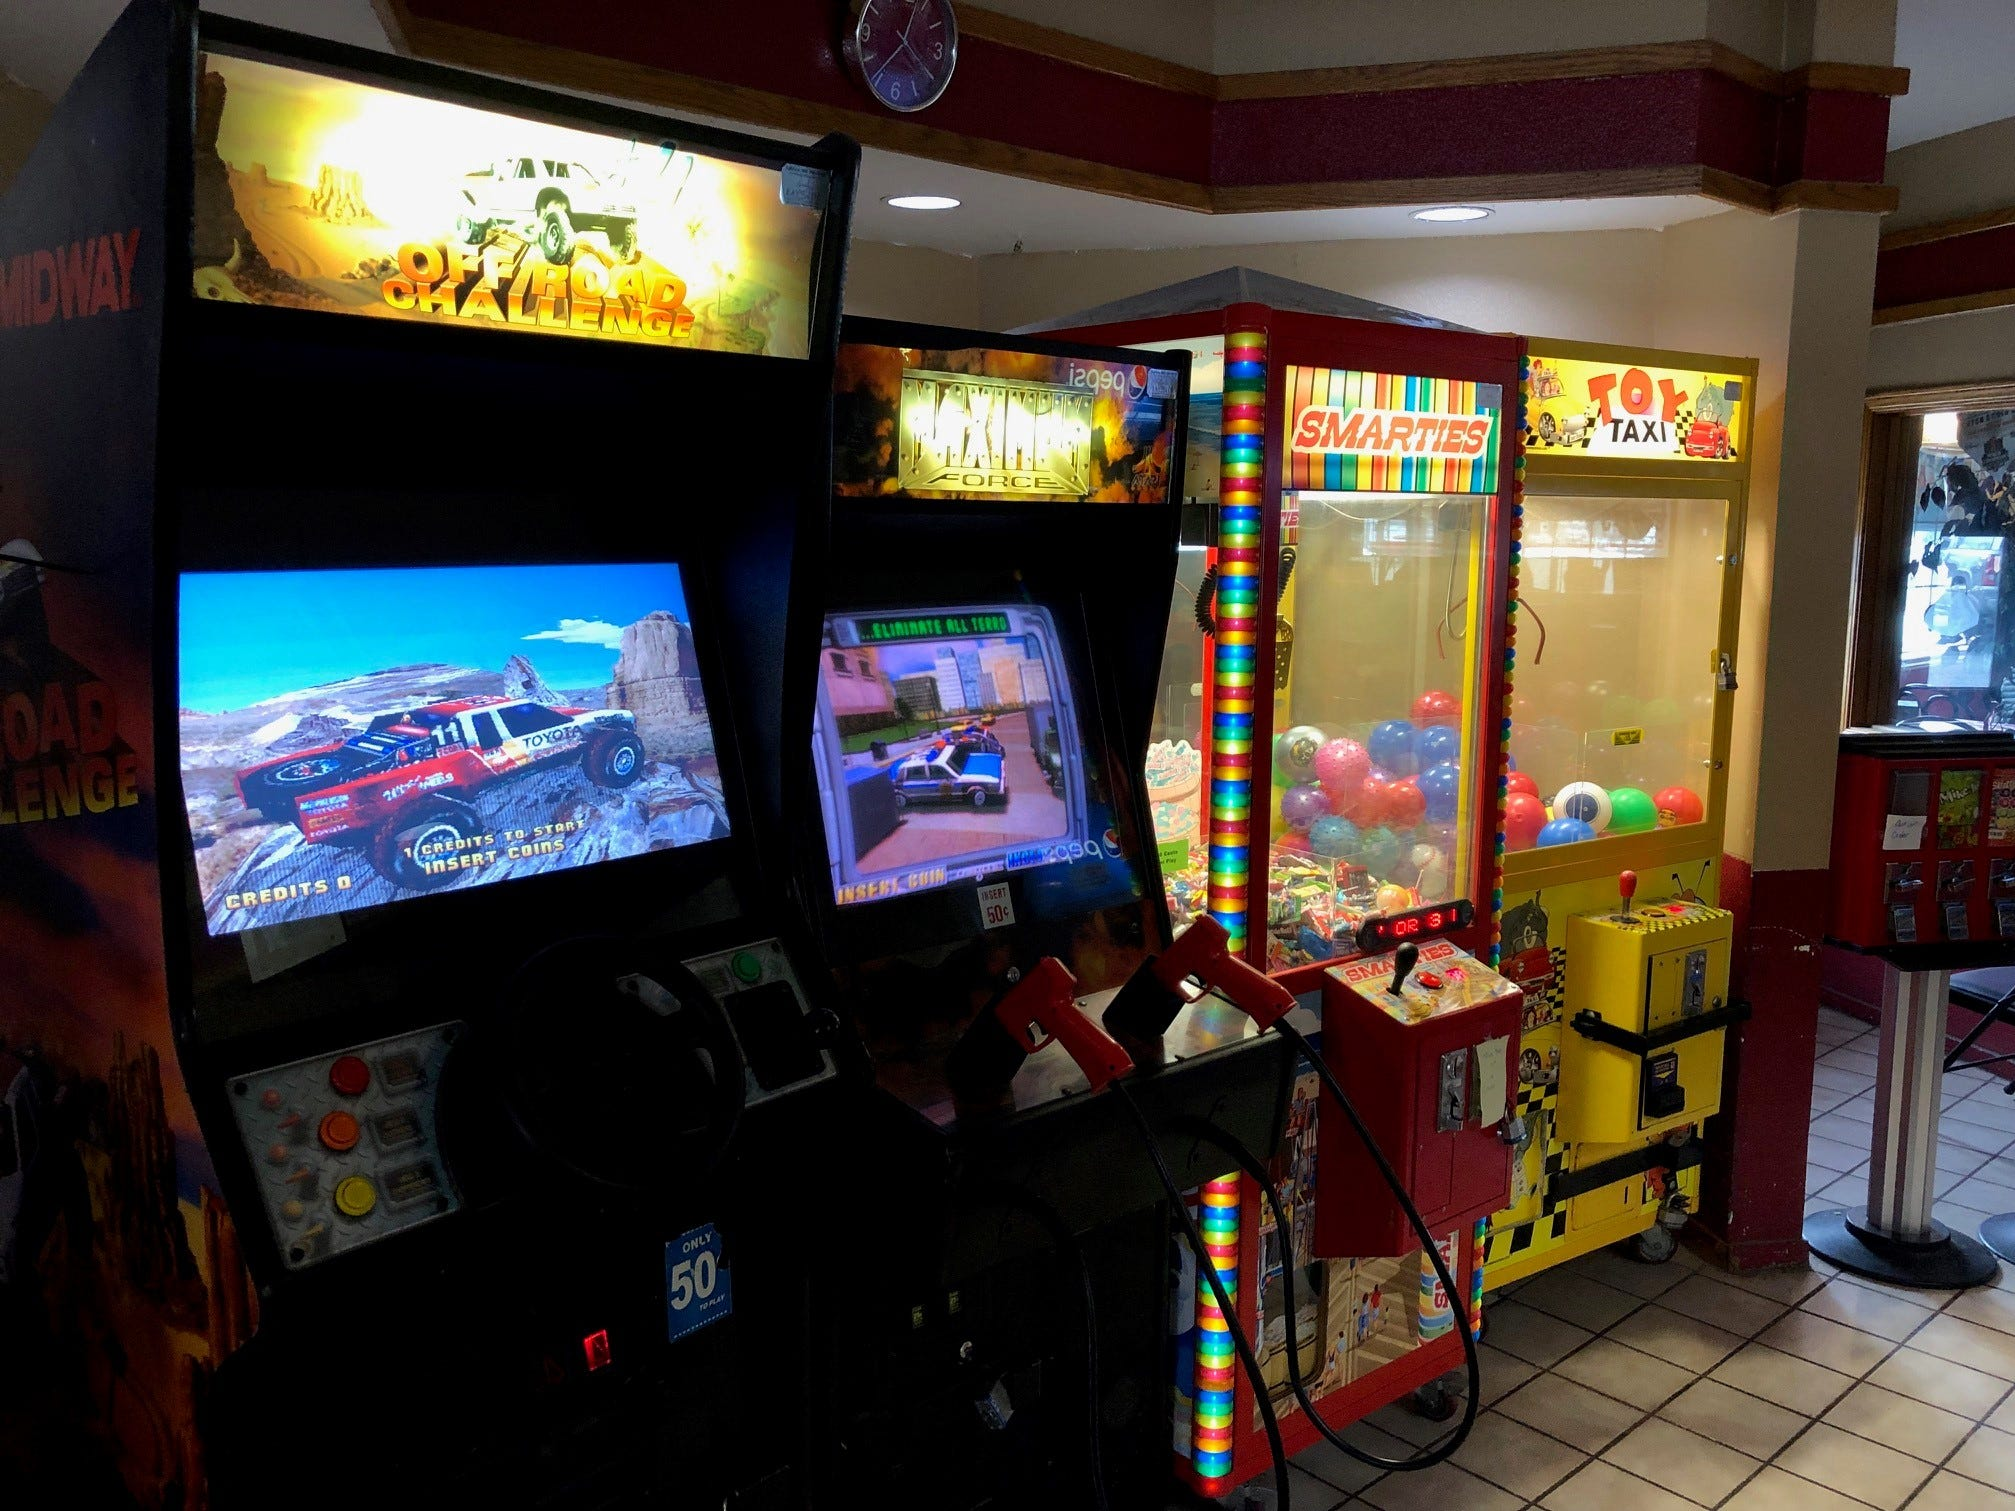 Arcade games for kids and adults alike at Market Street Pizza